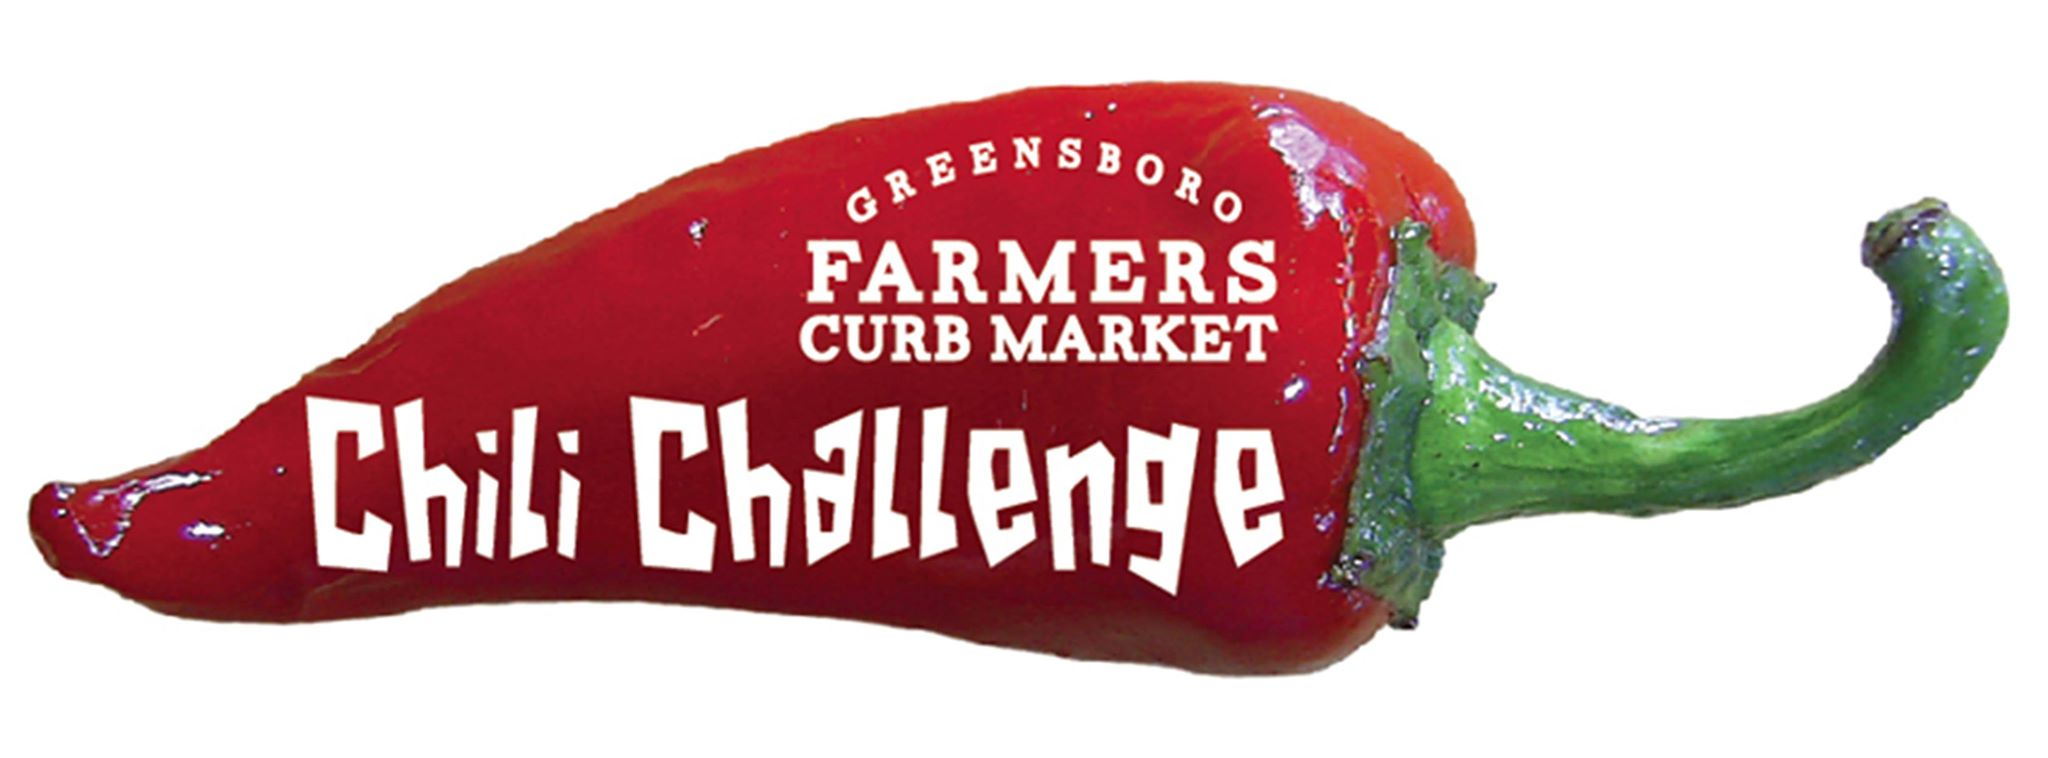 The Greensboro Farmers Curb Market Hosts 7th Annual Chili Challenge  Saturday, January 20, 2018 from 9am – 11:30 am